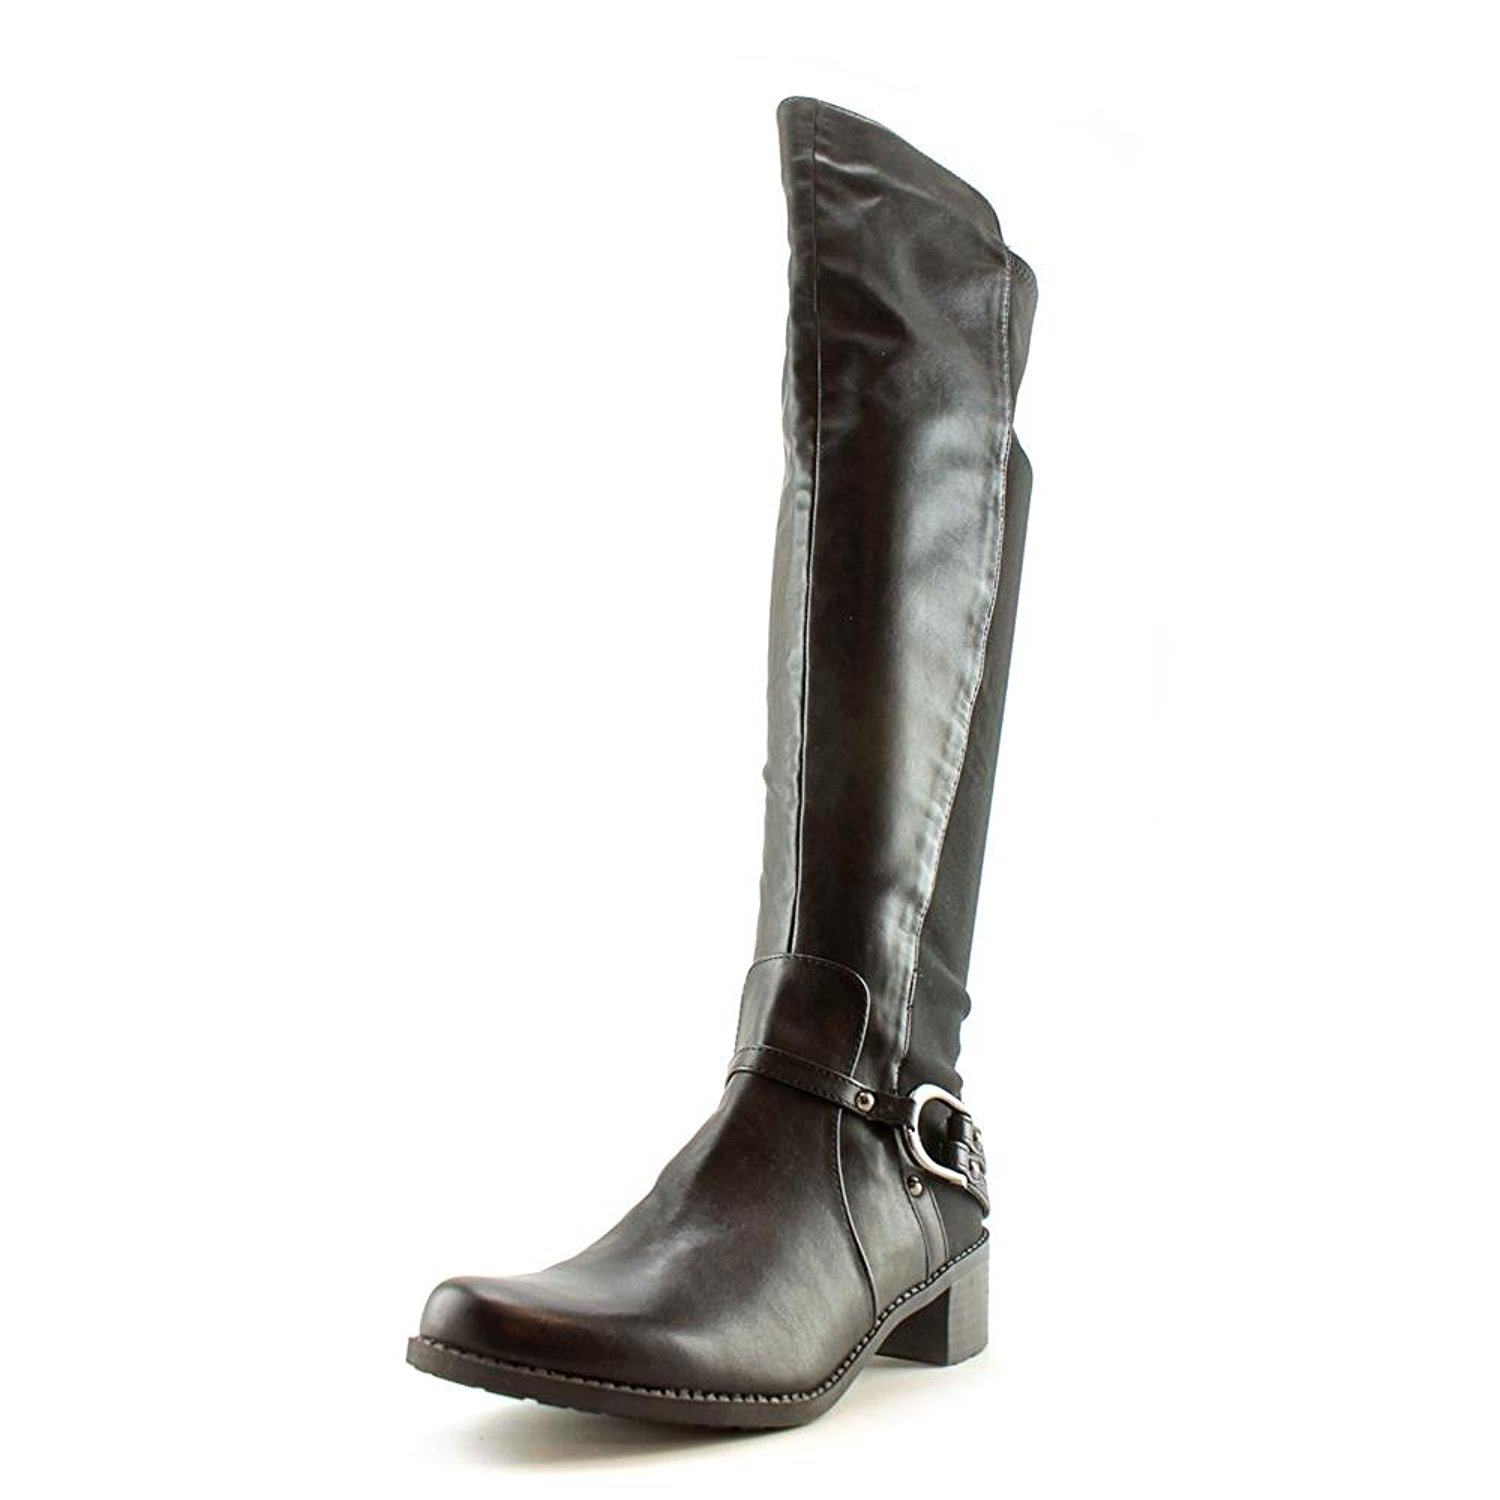 085cb2eed45 Marc Fisher Womens Kemos 2 Almond Toe Over Knee Fashion Boots